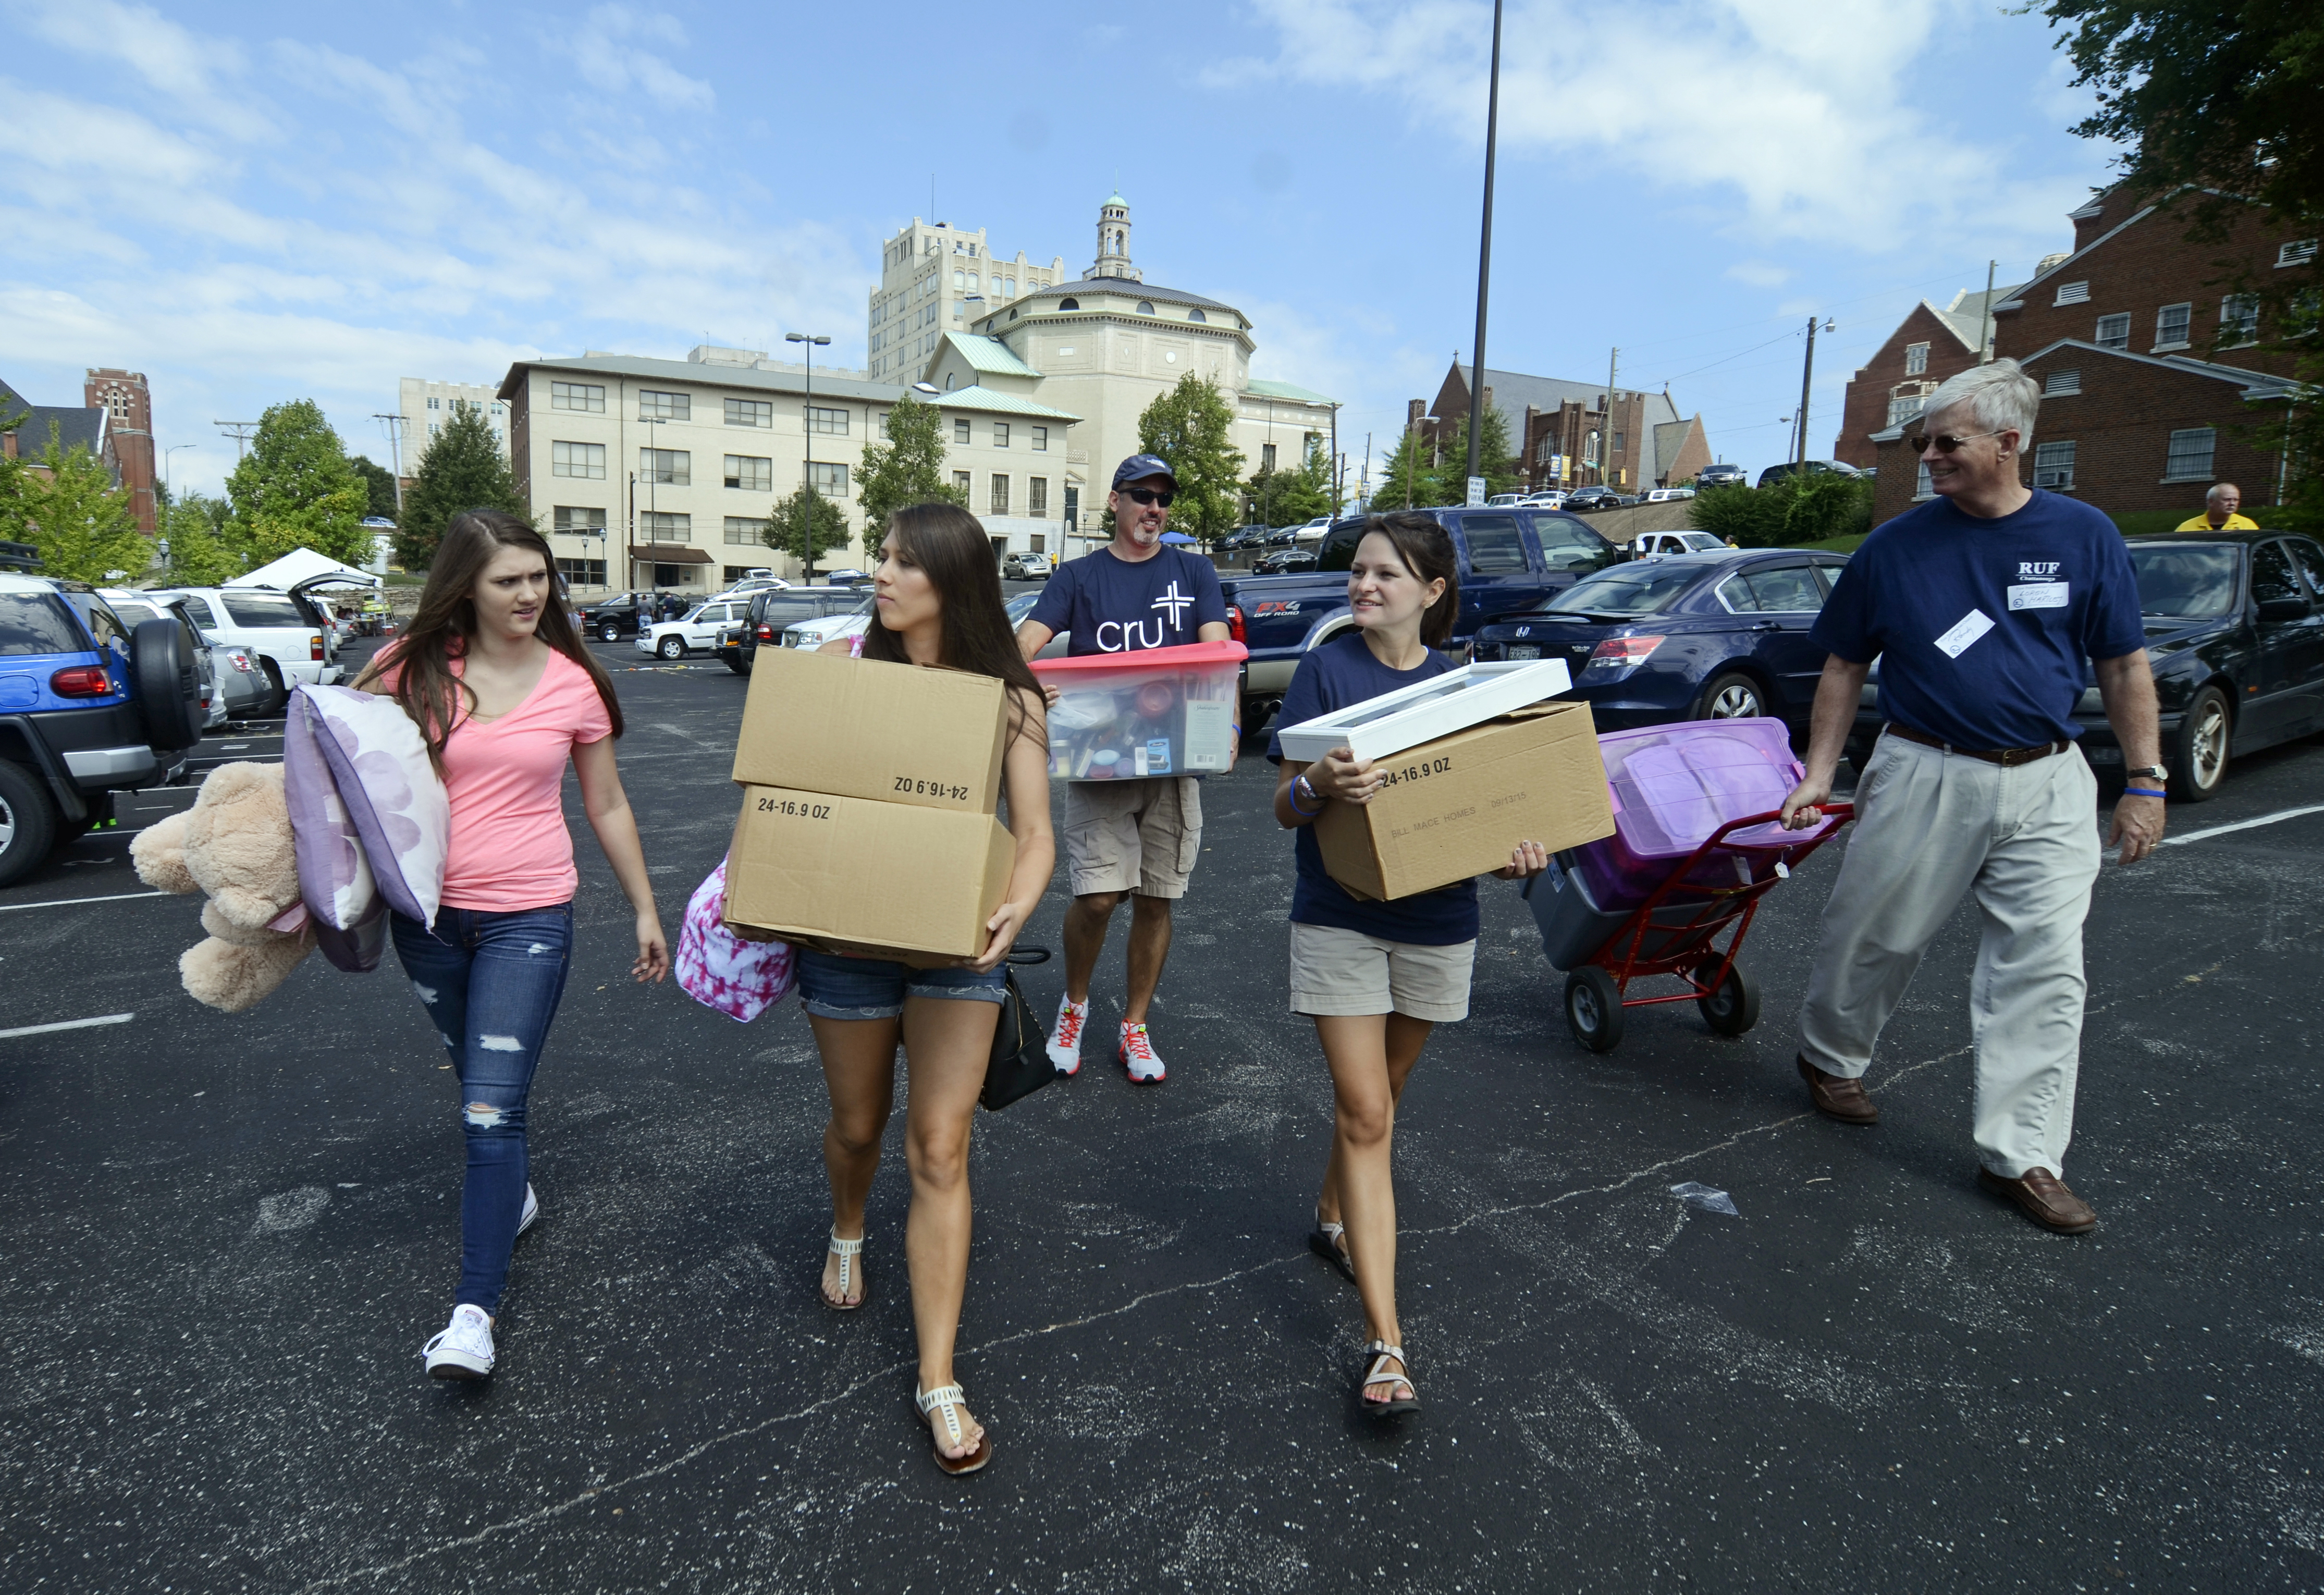 Chloe Bradley, left front, and Logan Laney, right front, help Tori Bradley, middle front, move into campus housing on Aug. 14, 2014,  at the University of Tennessee at Chattanooga in Chattanooga, Tenn.